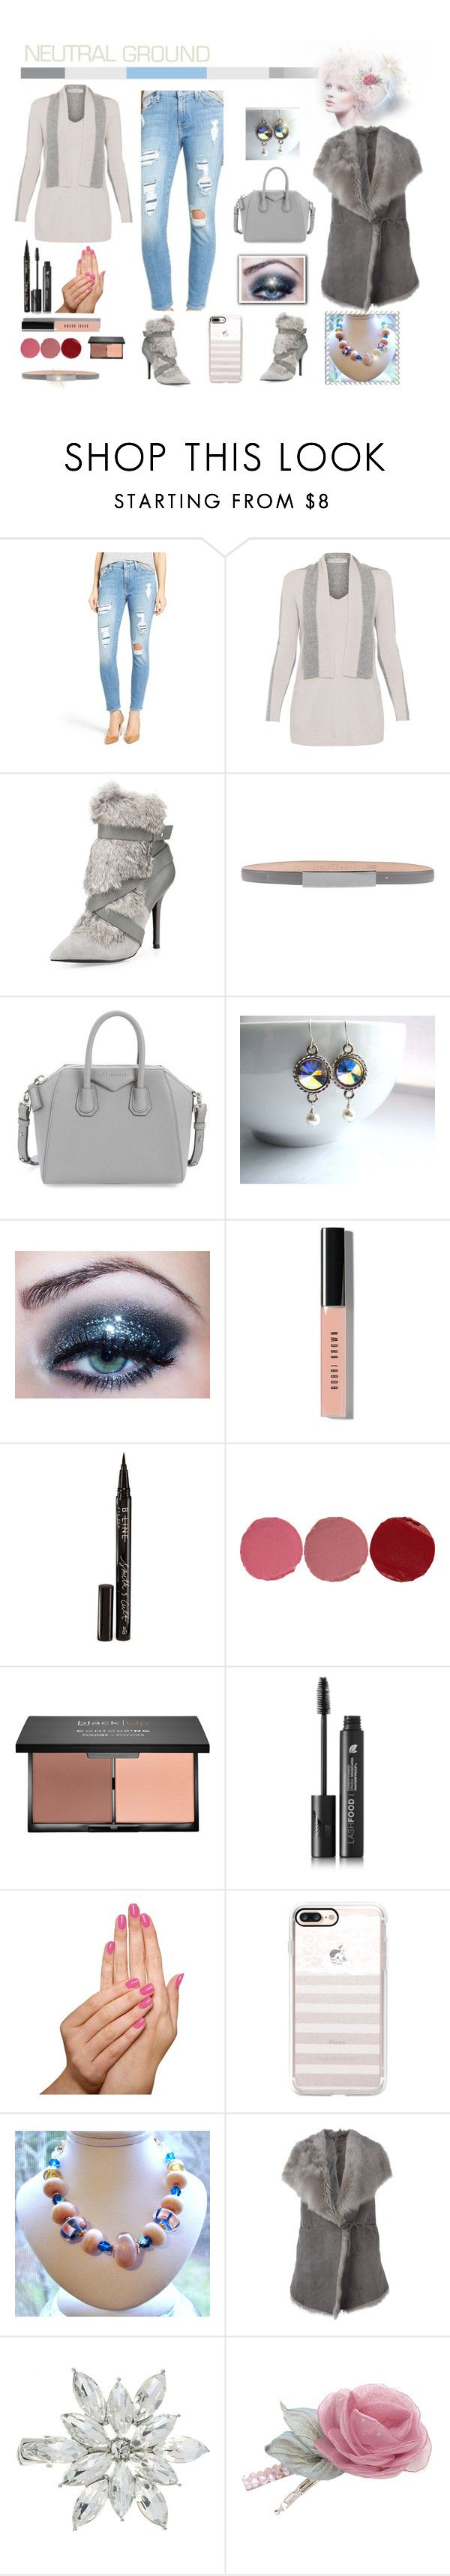 """Neutrals"" by belladonnasjoy ❤ liked on Polyvore featuring 7 For All Mankind, D.Exterior, Charles Jourdan, Barbara Bui, Givenchy, Bobbi Brown Cosmetics, Smith & Cult, Charlotte Tilbury, blacklUp and LashFood"